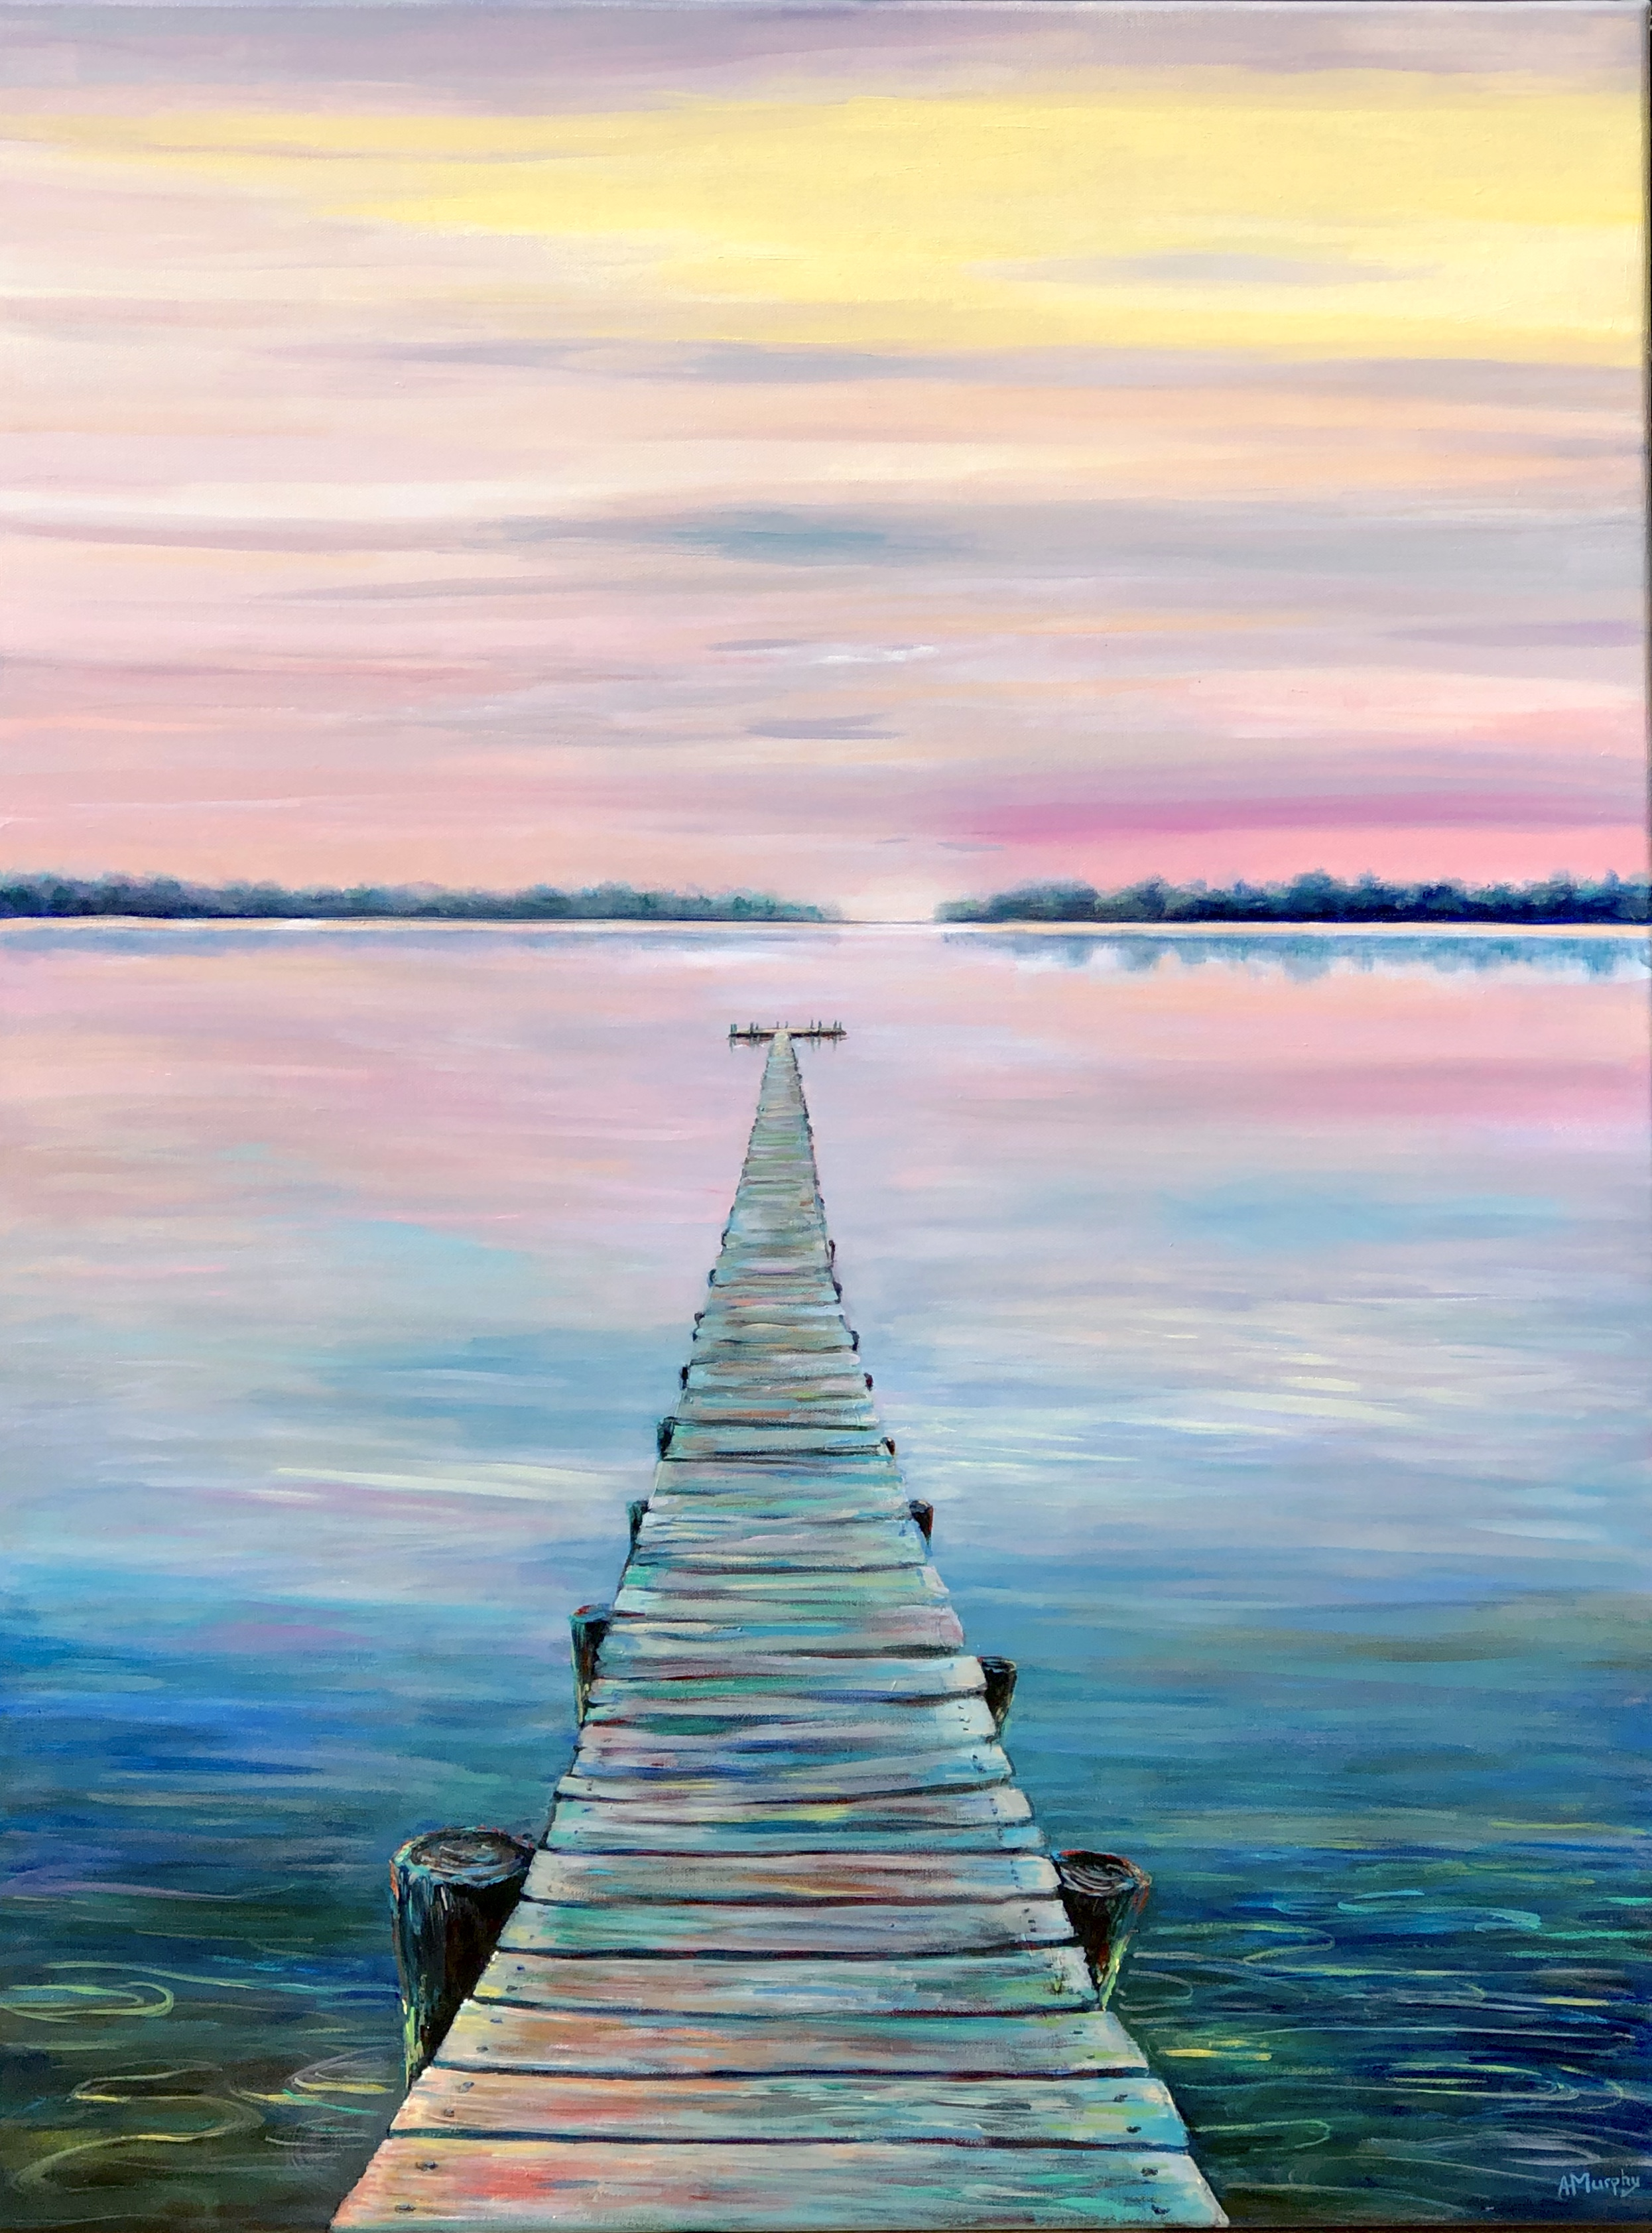 'In the Pink', acrylic by Abby Howard Murphy ($375) ⎼ 'Alone, isolated… and time seems to have frozen while we wait. But, in the distance -- just beyond our reach -- we yearn for the peace, hope and calm we are certain is there, if we follow the path forward across the murky water all around us.'